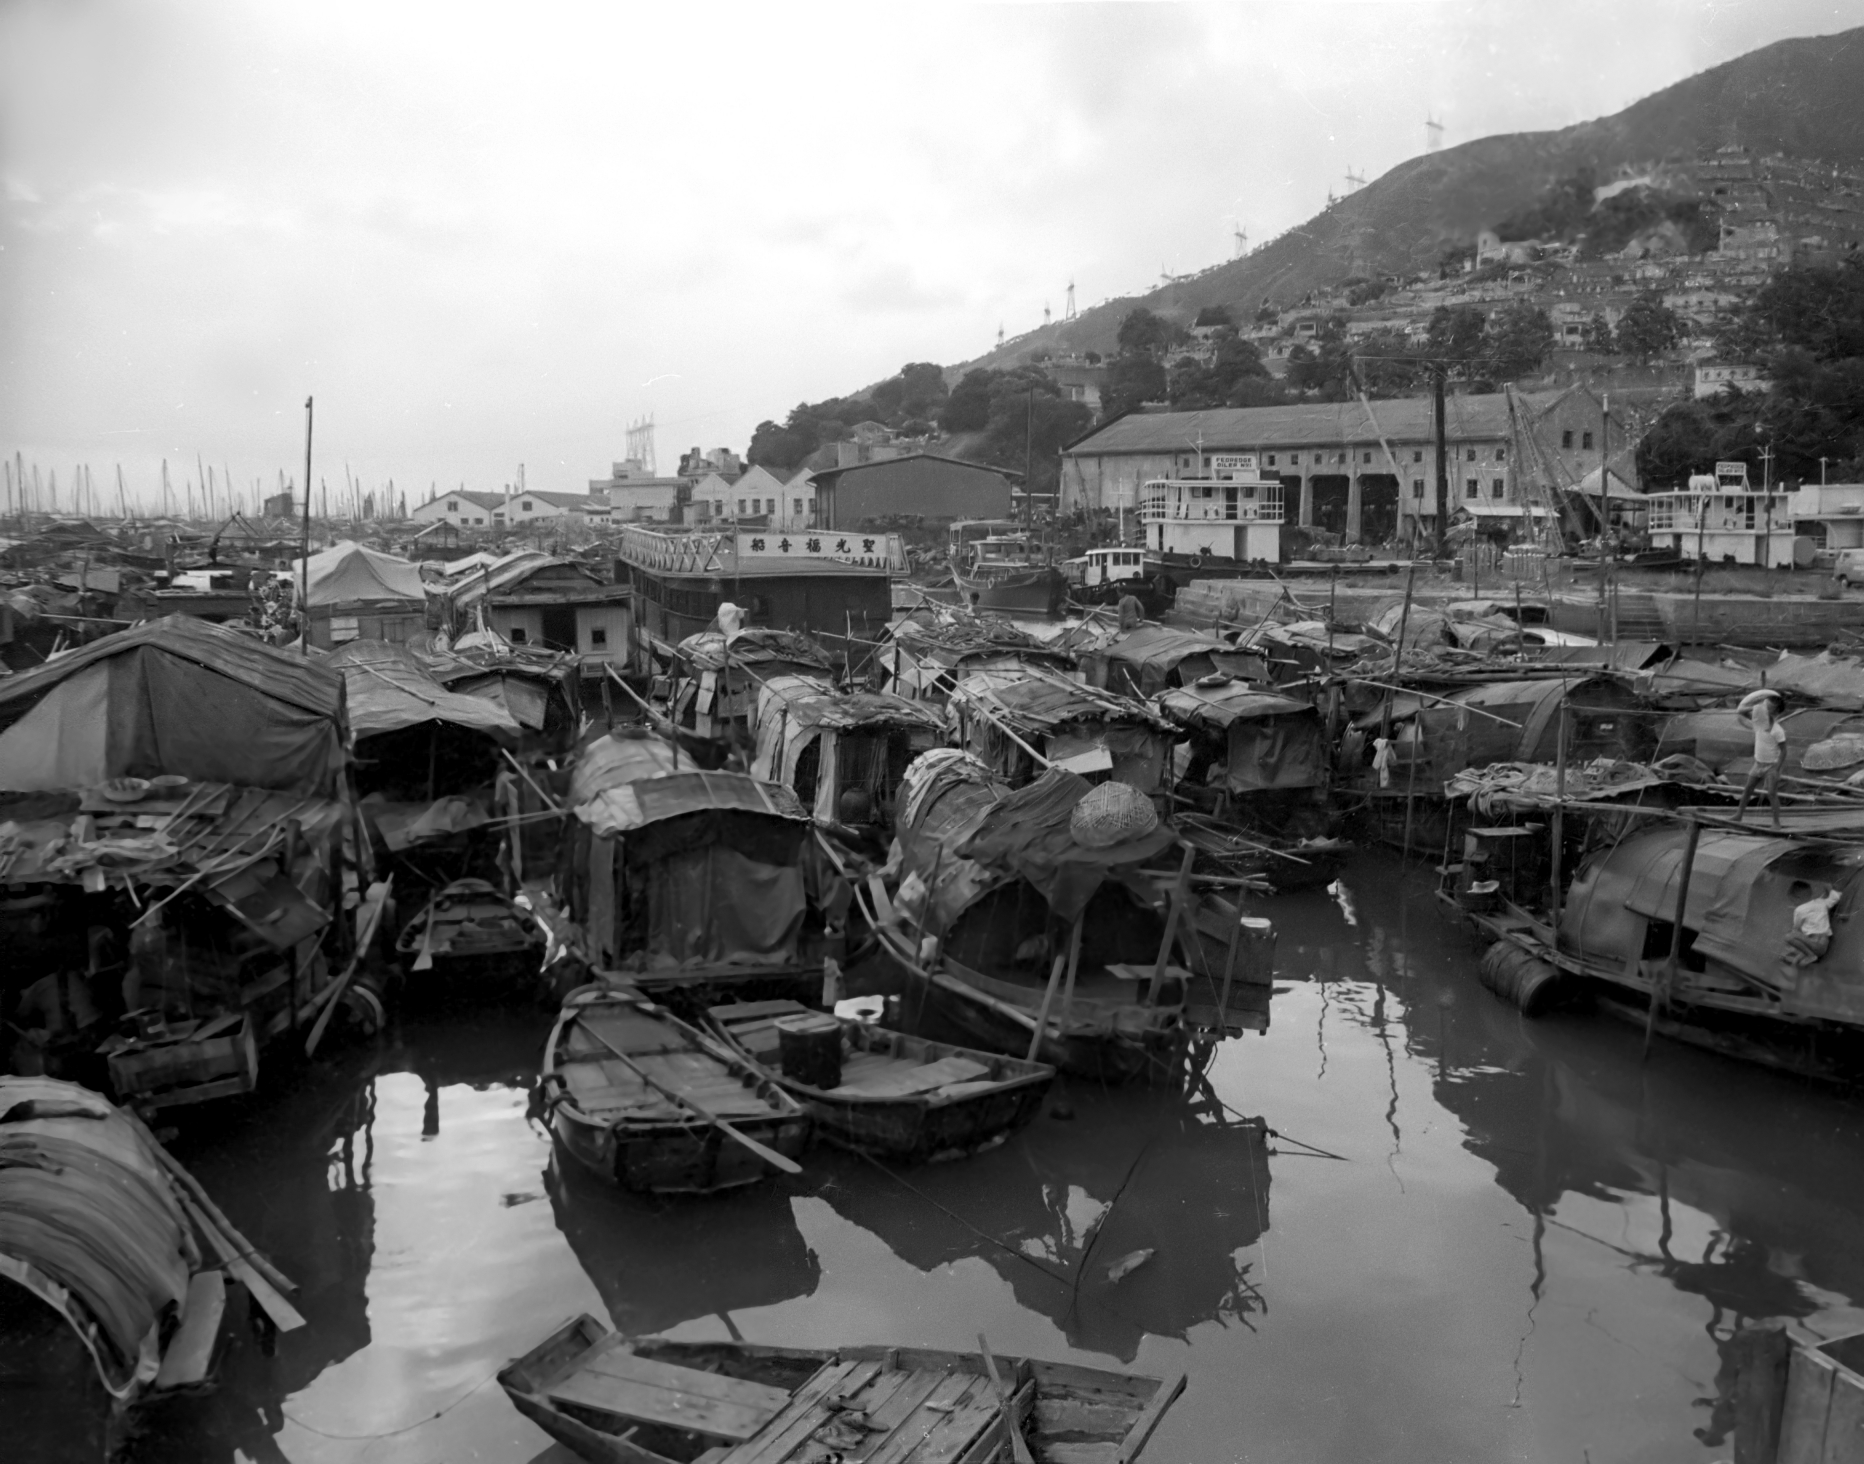 EXCLUSIVELY FEATURED BY EASTPRO - hong kong 1969 fishermen village - boat people